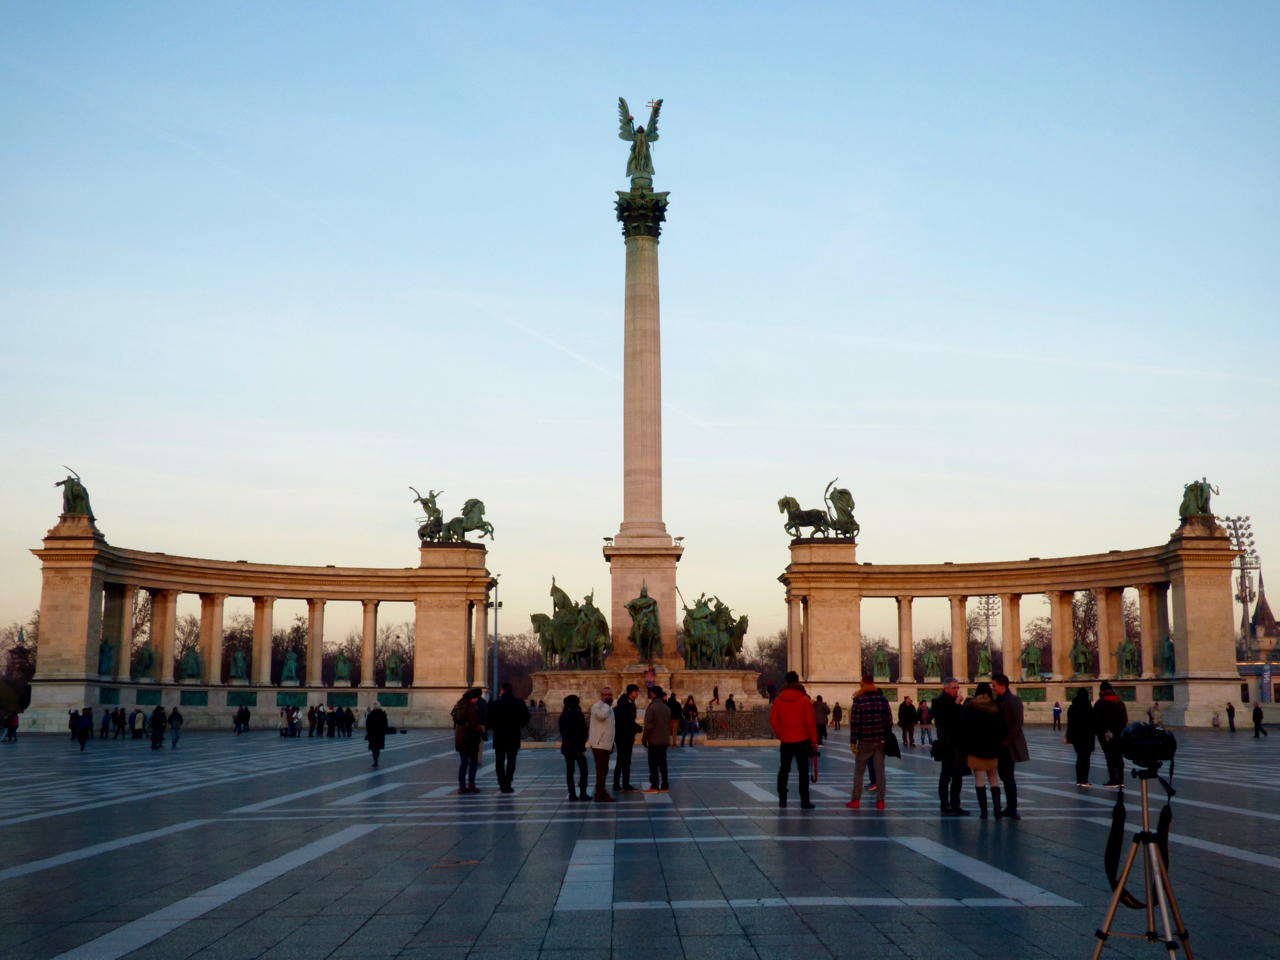 Heroes' Square Budapest, Hungary